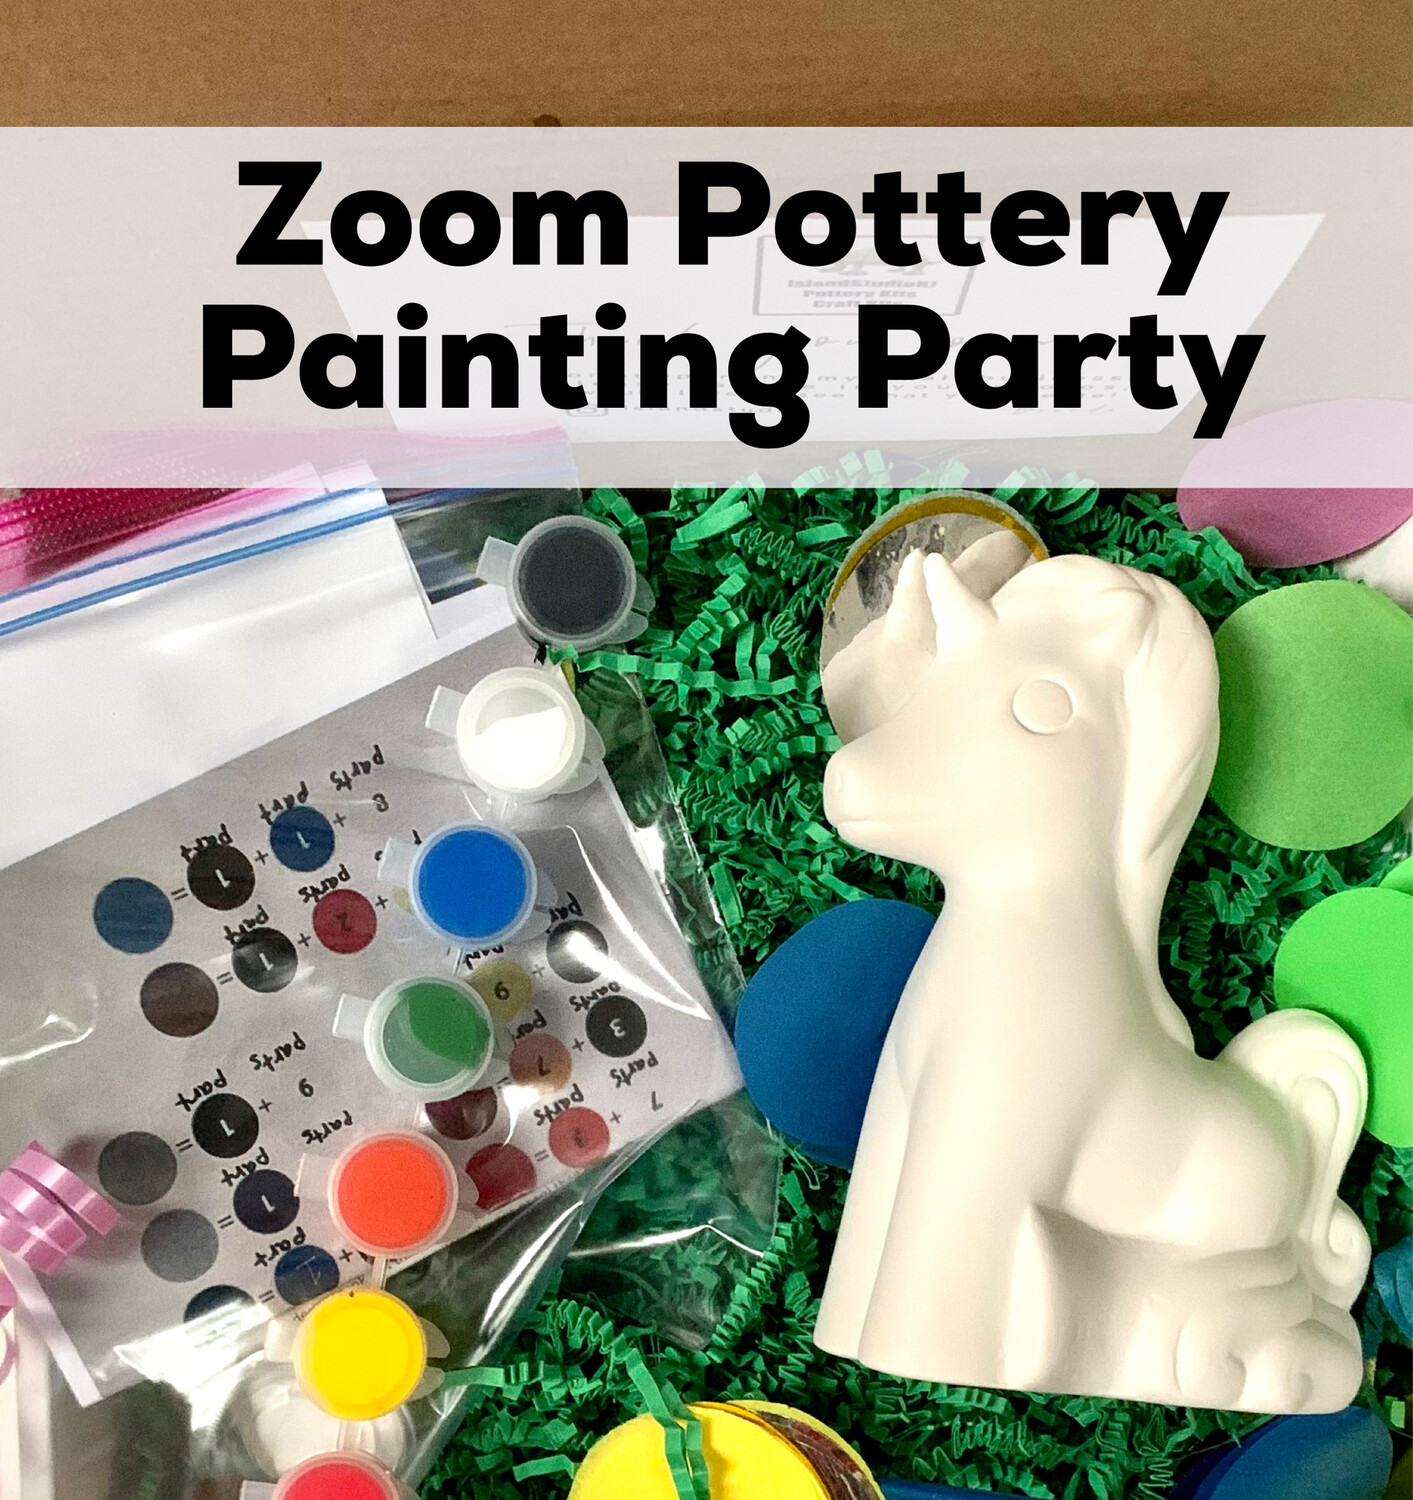 Zoom Pottery Painting Party August 10, 2021 from 3-4:30pm - Free With Pottery Purchase